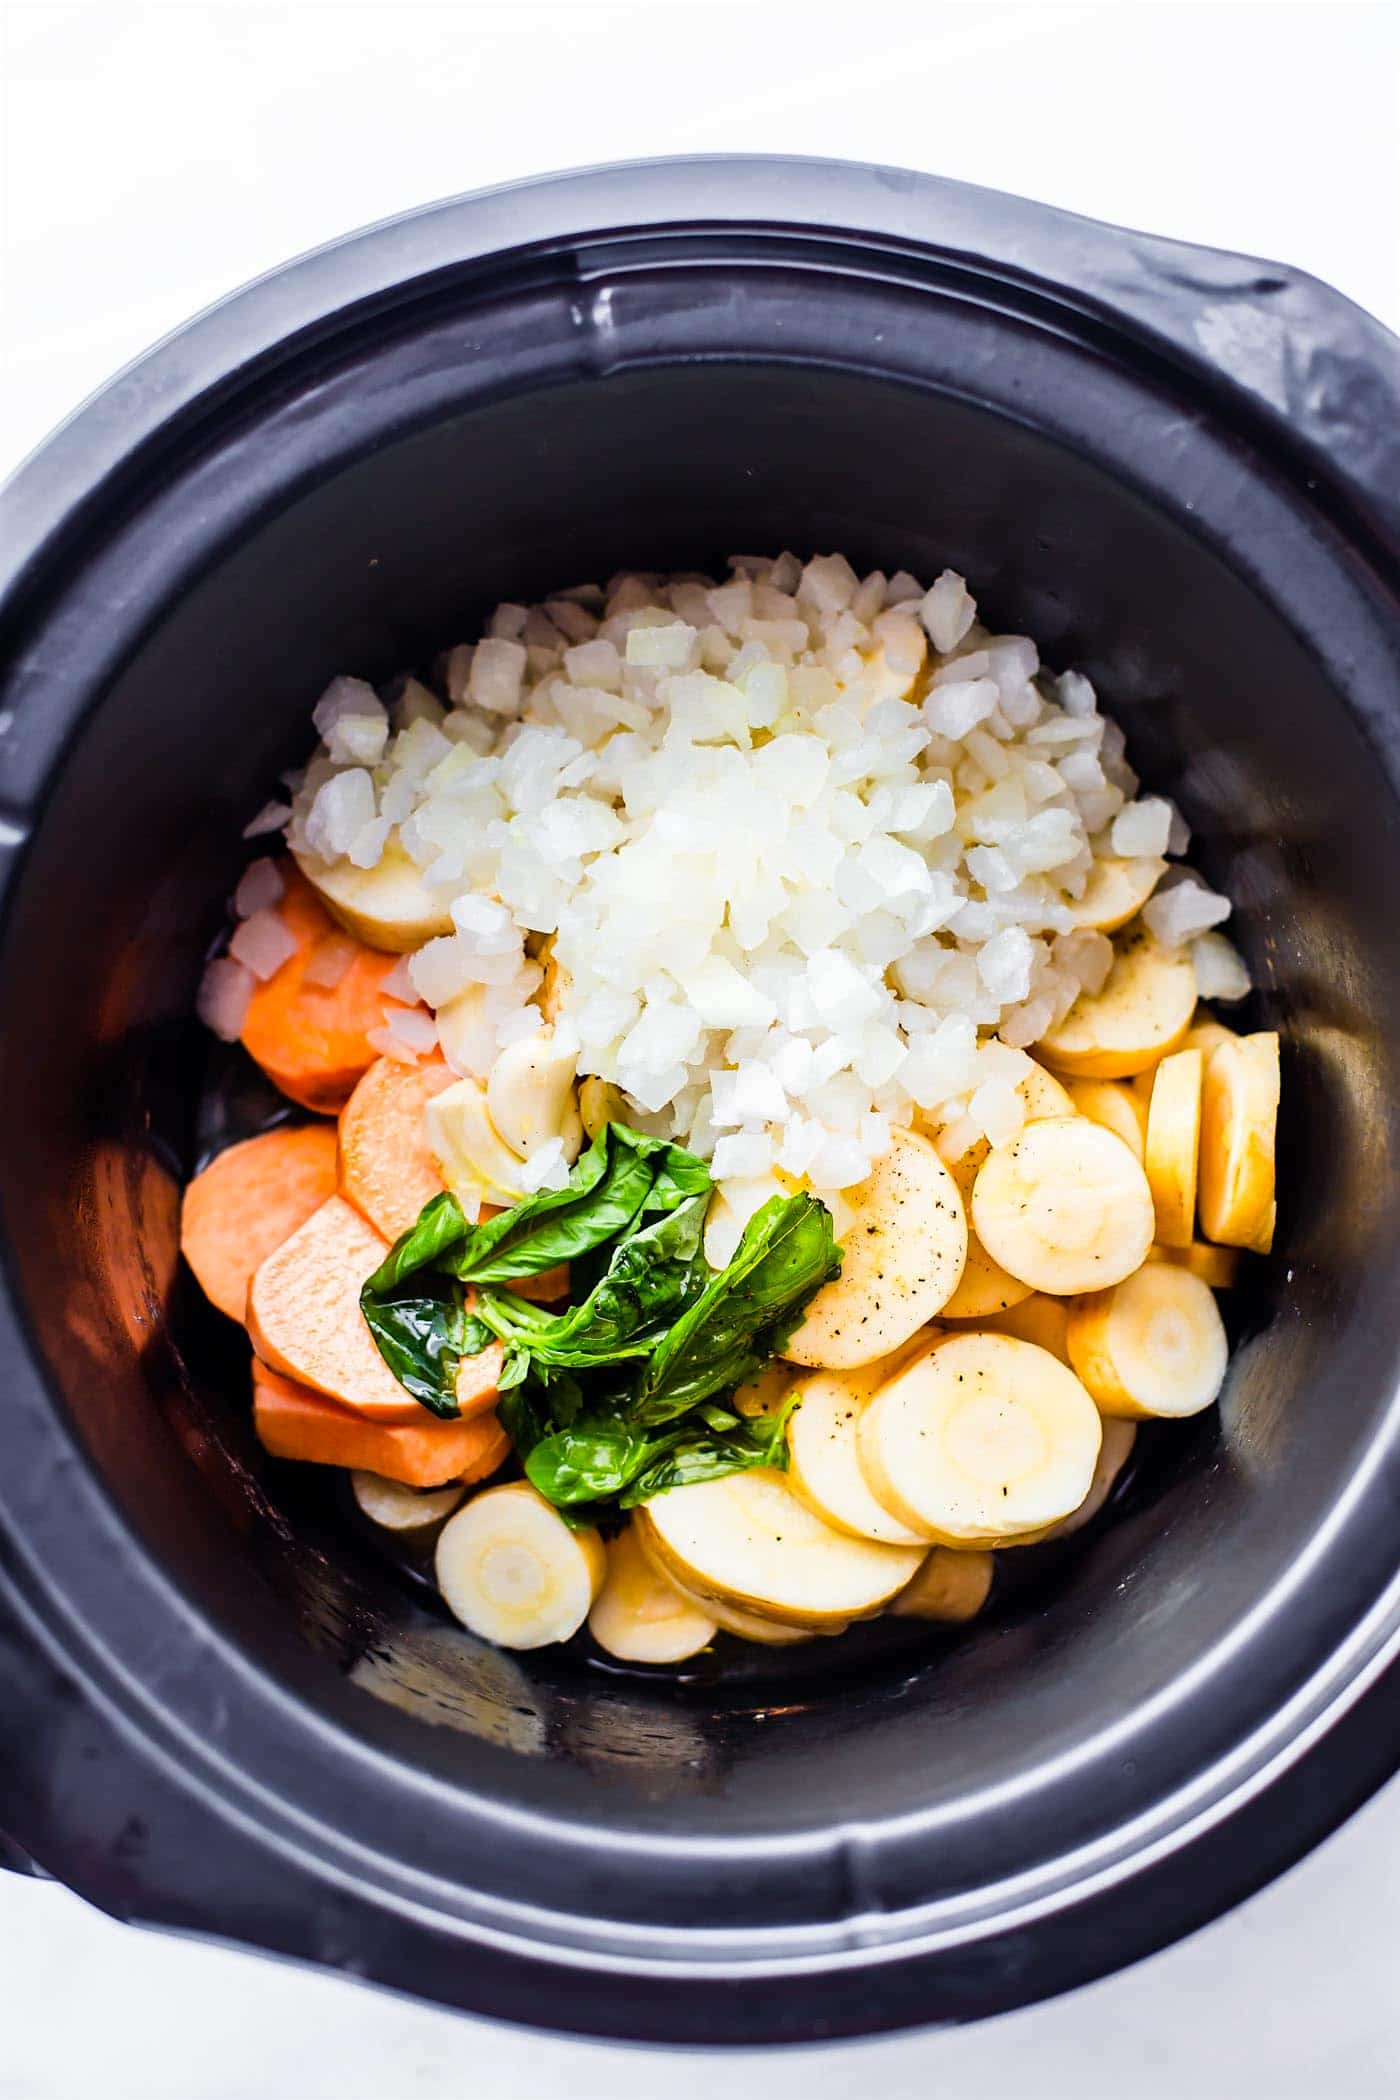 A Ham chowder soup with parsnips and sweet potatoes! This crock pot paleo ham chowder is wonderful way to use up your leftover Holiday ham! Creamy, comforting, healthy, and flavorful! An easy dairy free soup recipe for the whole family. www.cottercrunch.com